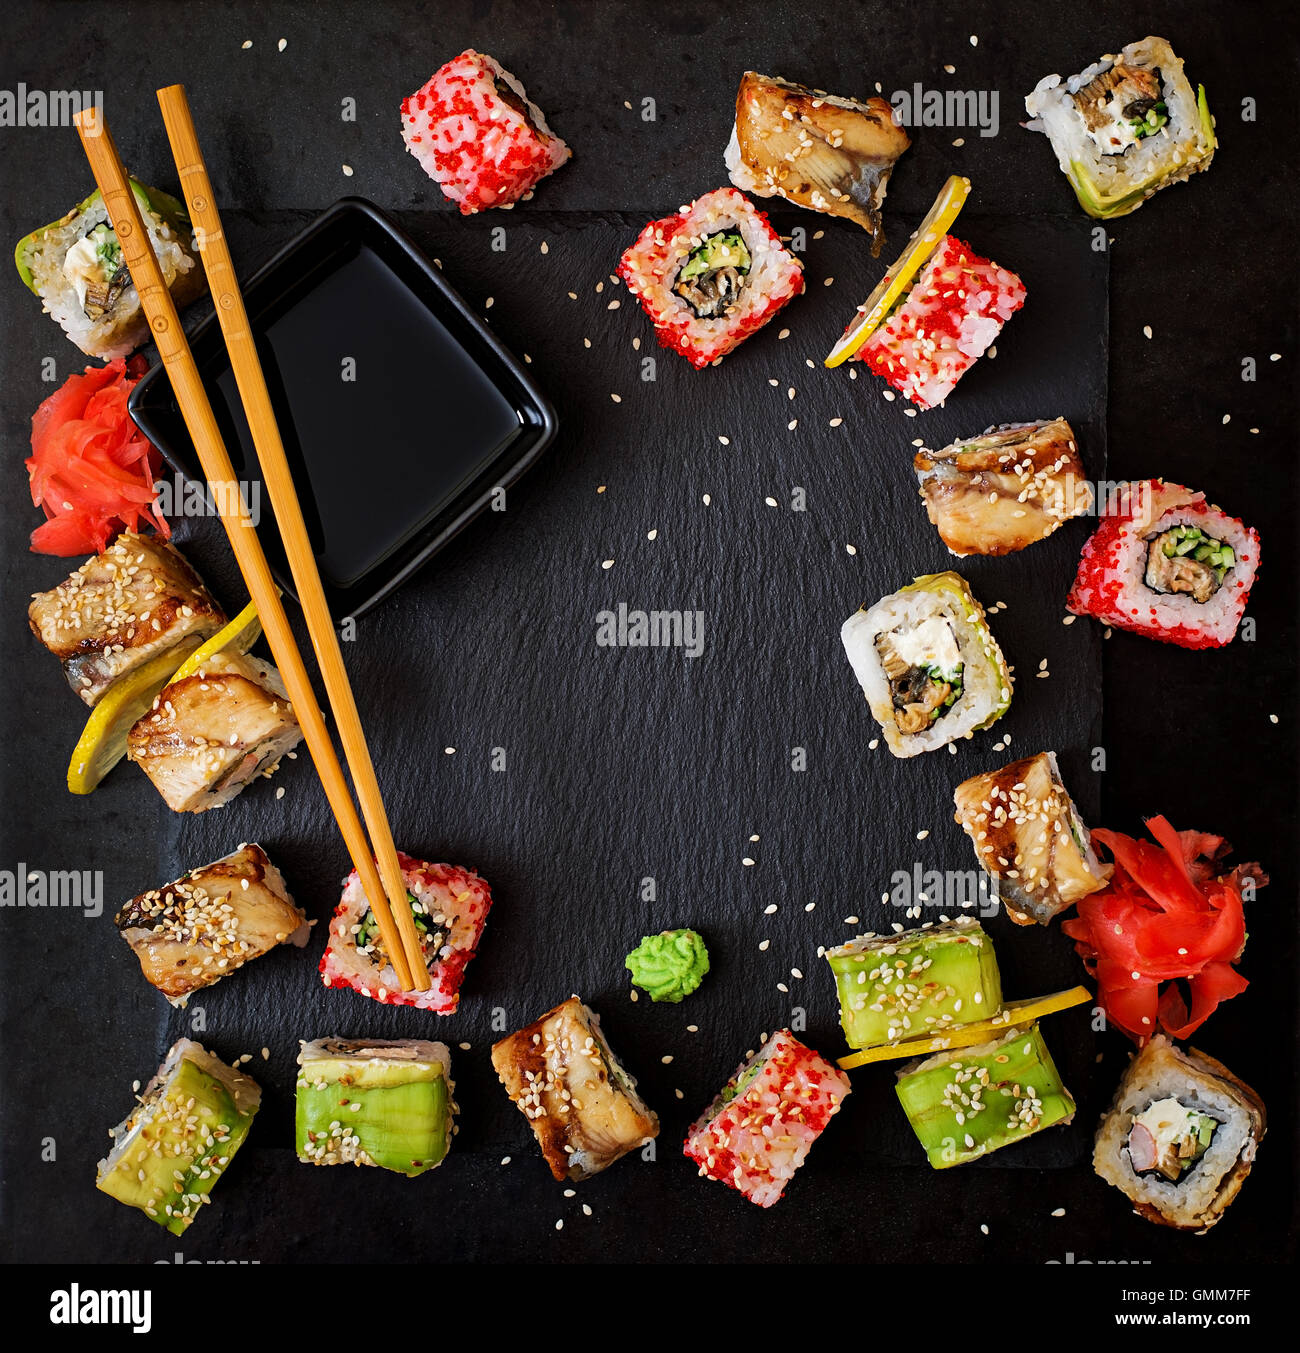 Traditional Japanese food - sushi, rolls and sauce on a black background. Top view - Stock Image